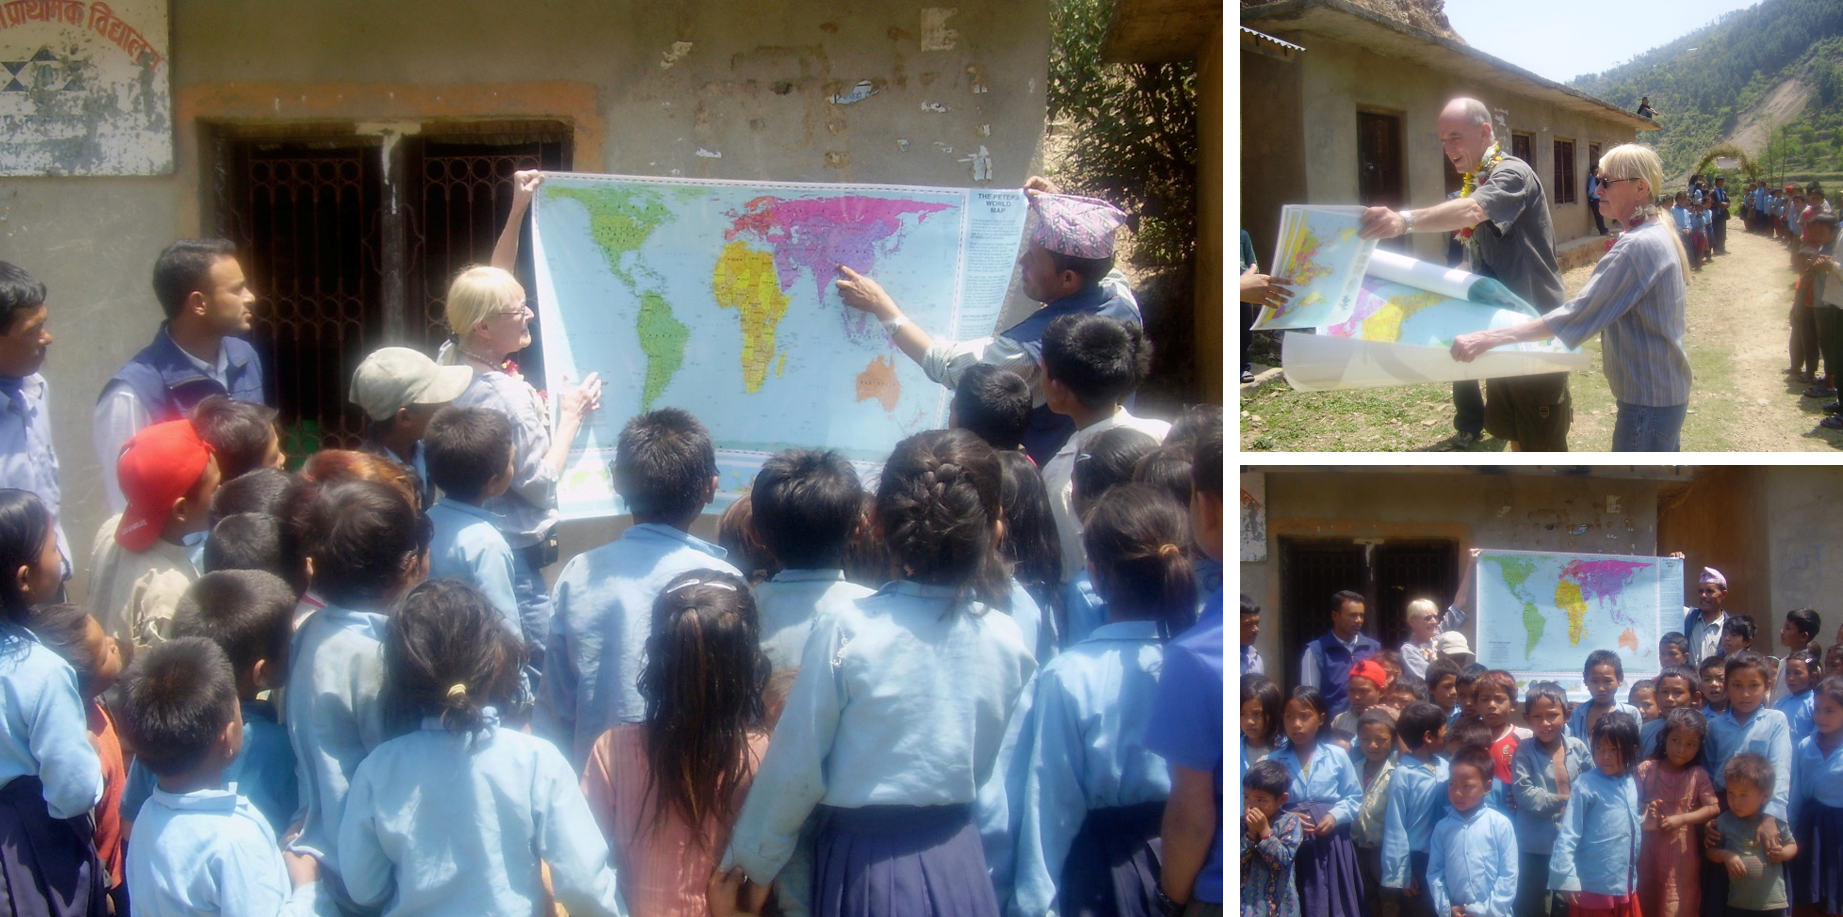 Clockwise from top right:    B I G day!    Kirk Nepal (Kirk Richmond) and Barbara Novak unpack the first shipment of Peters world maps to reach Nepal, for regular use in schools. A teacher and a volunteer offer a new view of Nepal and the world to students at a Shree Manhankal school. The Nepali teacher points to their country as he encourages new thinking about its place in world affairs.